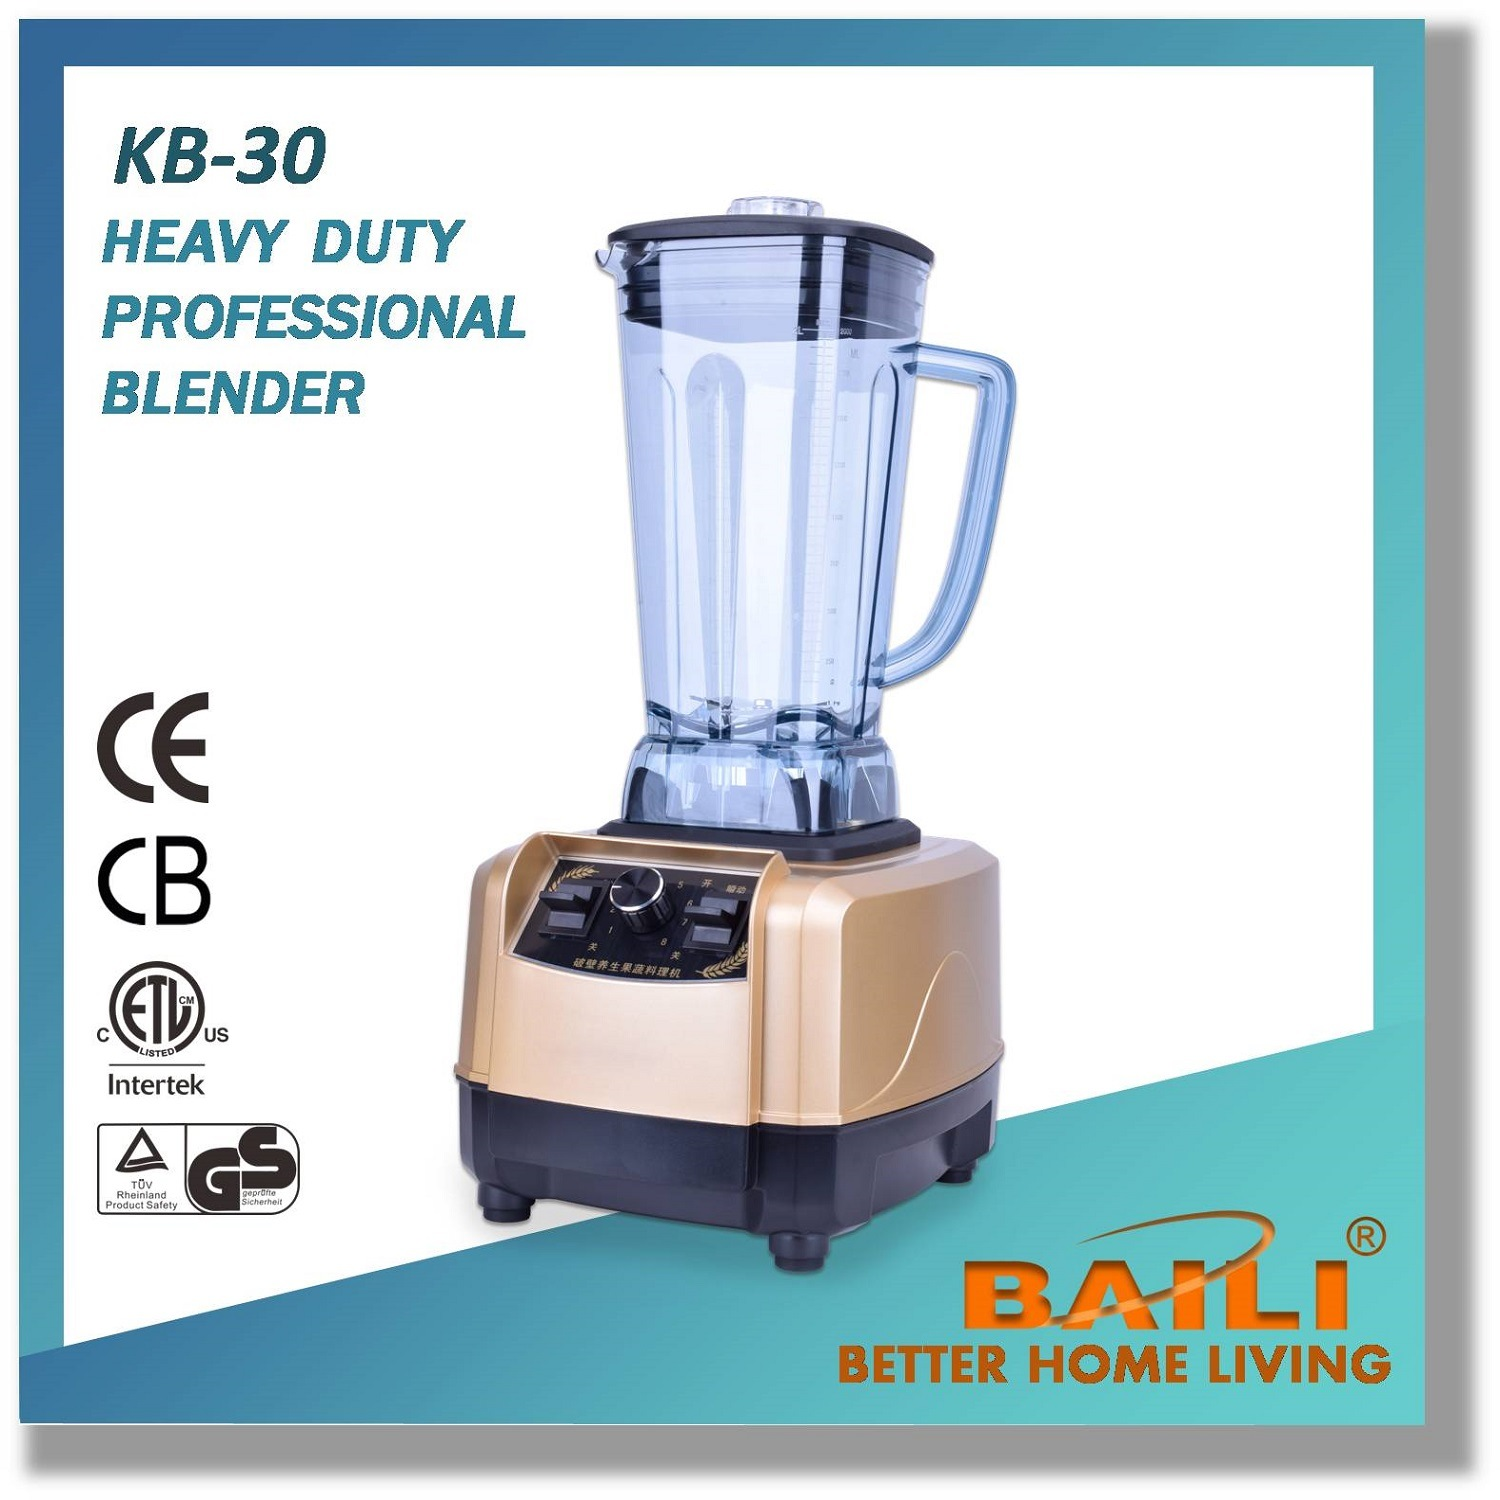 Heavy Duty Professional Blender with Variable Speed Control